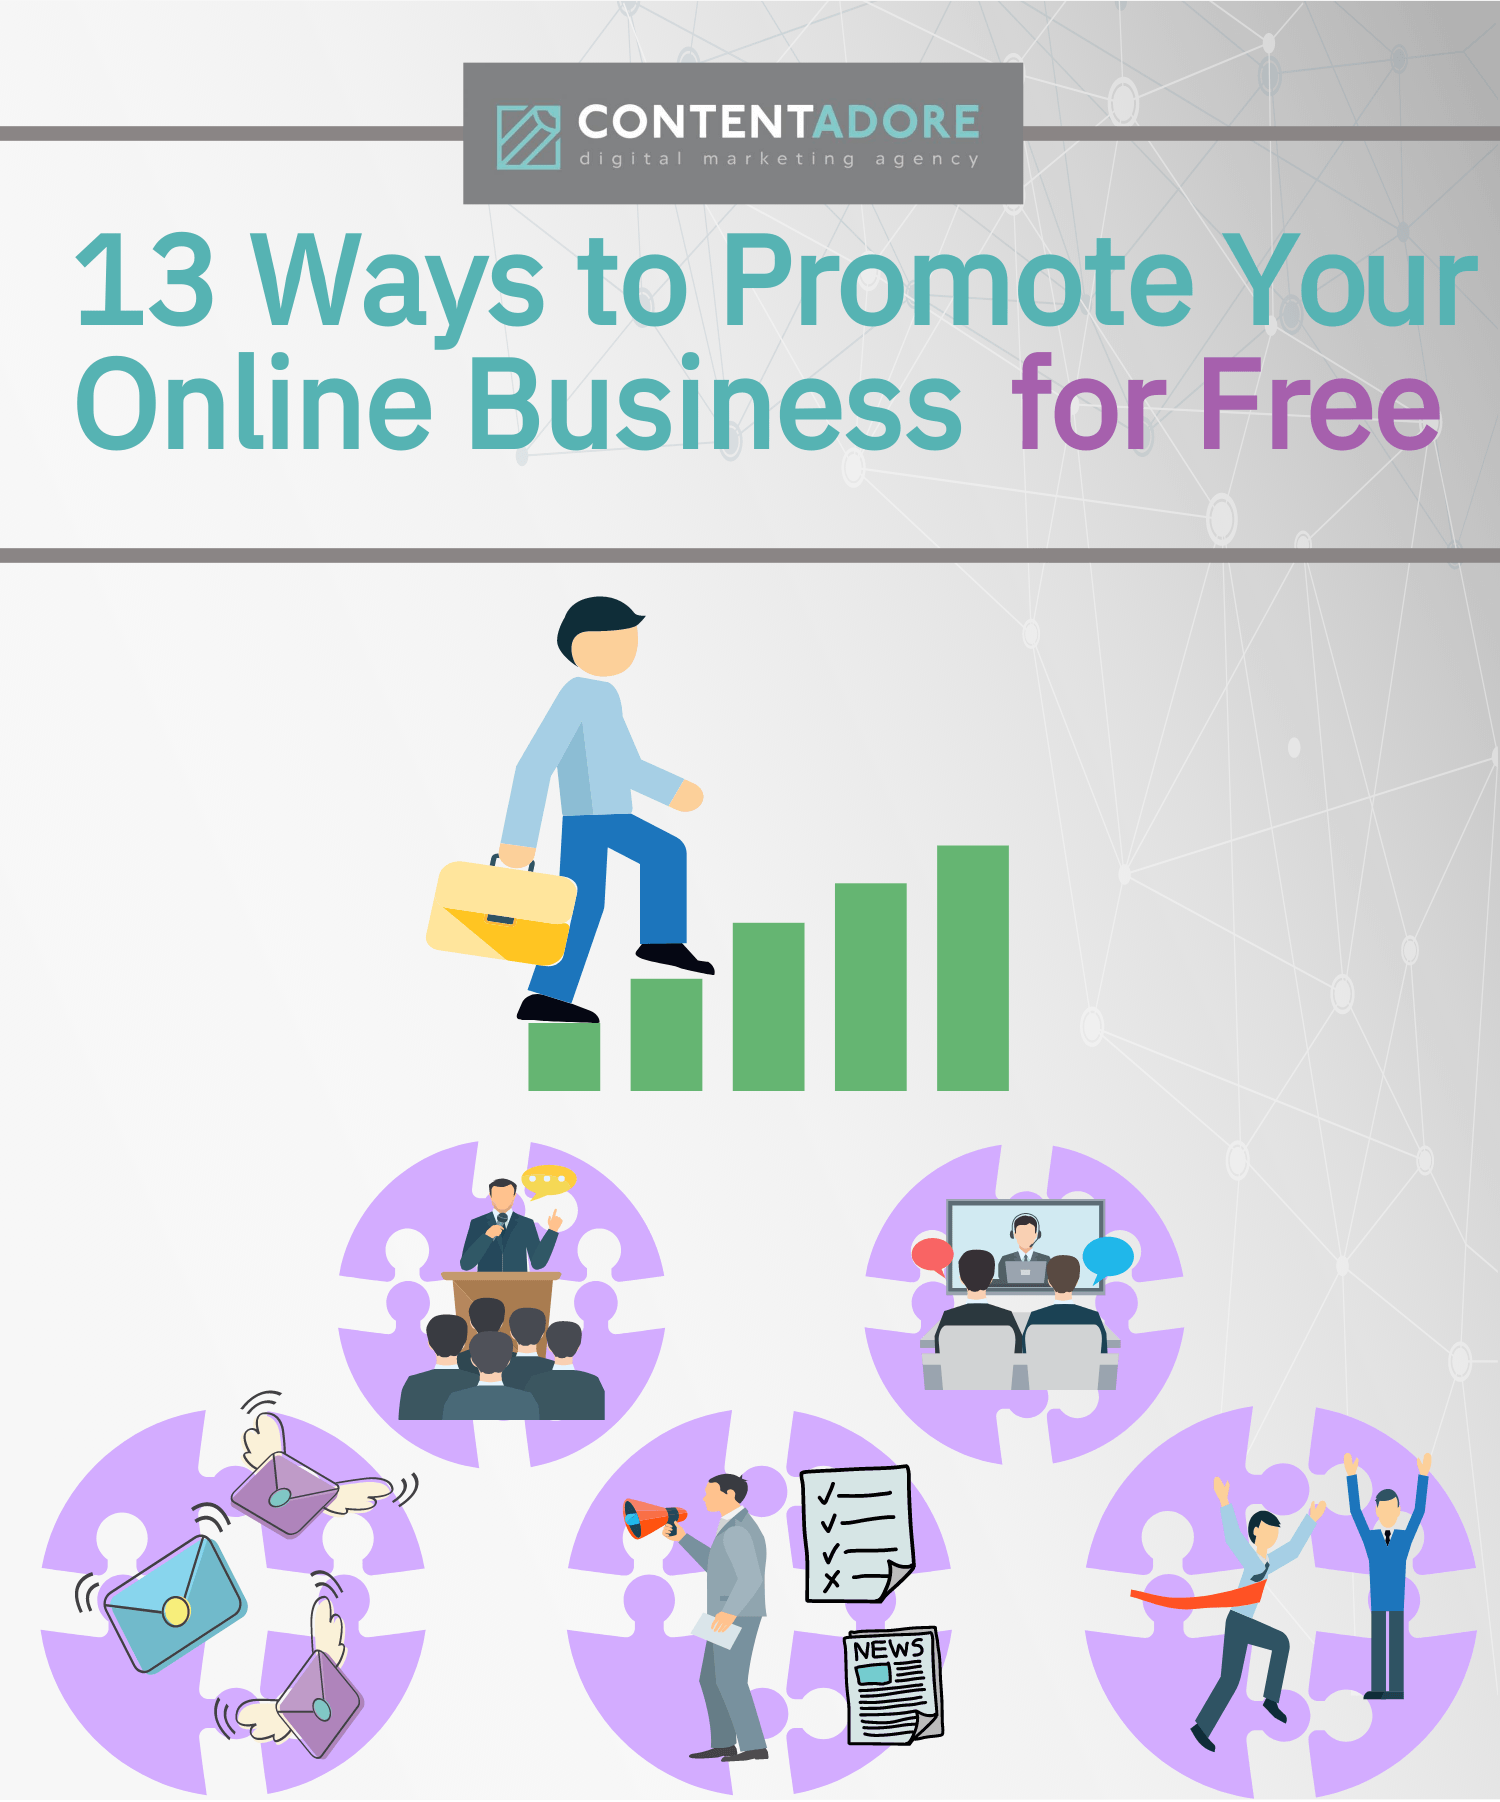 13 Ways to Promote Your Online Business for Free